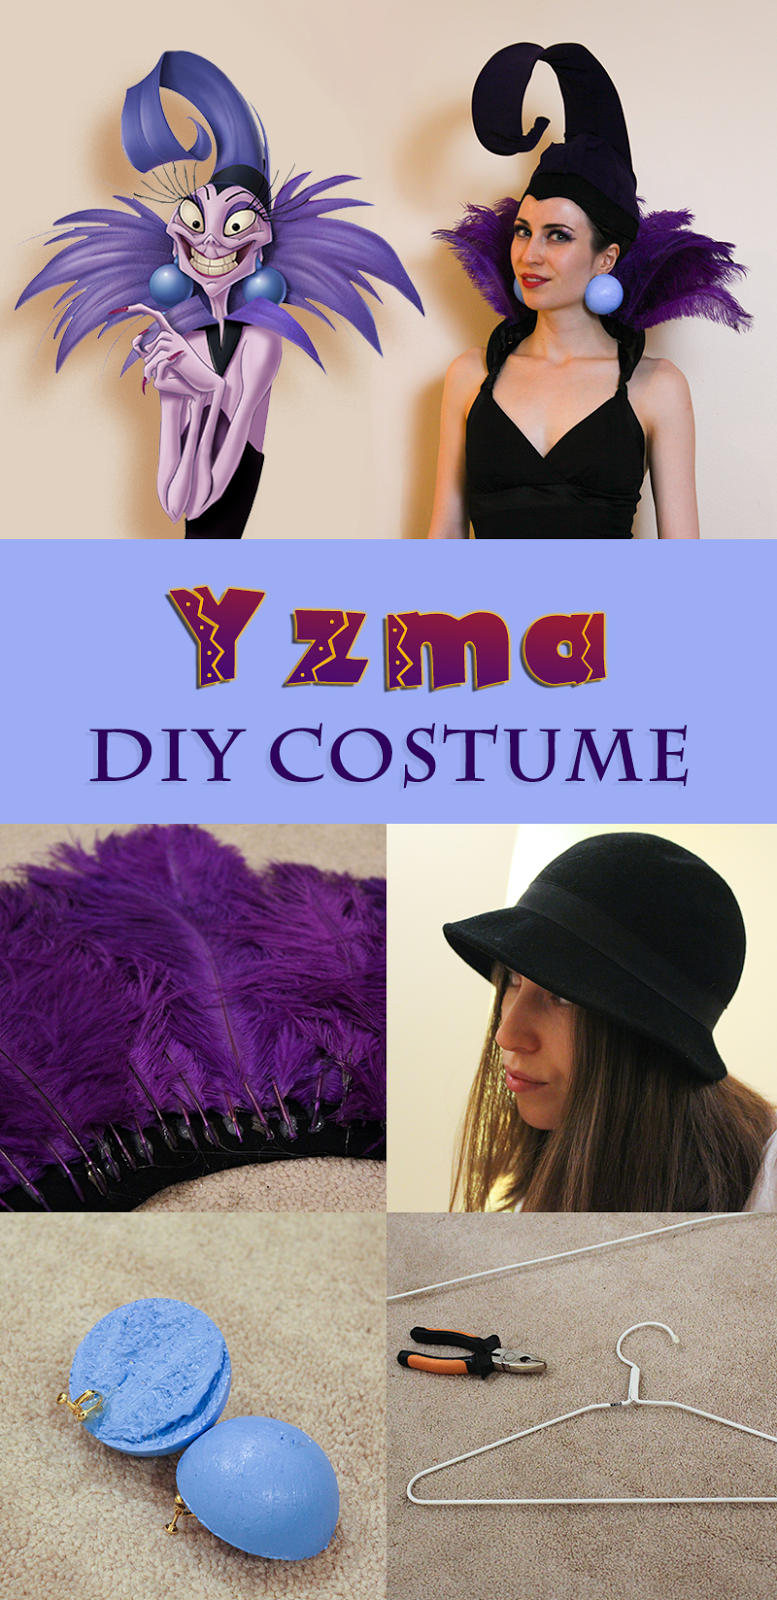 Yzma costume for under $50, made in 3 hours. Step-by-step instructions, made from a cloche hat, two hangers, feathers and a pair of tights.